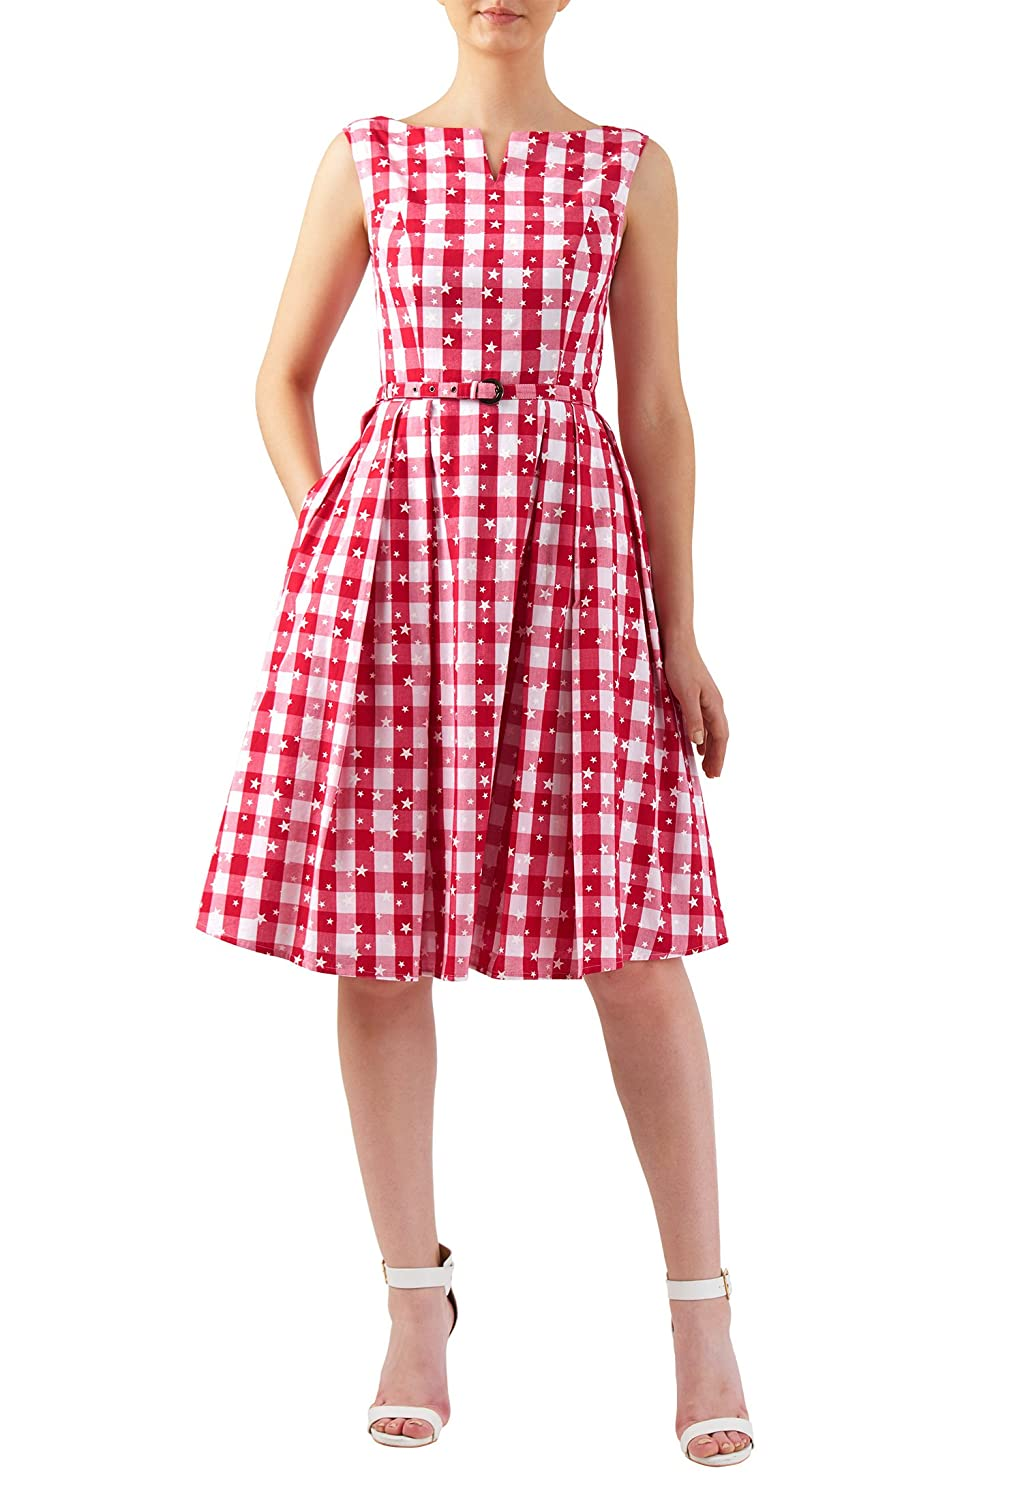 Vintage Inspired Clothing Stores  Star print gingham check cotton midi dress $65.95 AT vintagedancer.com